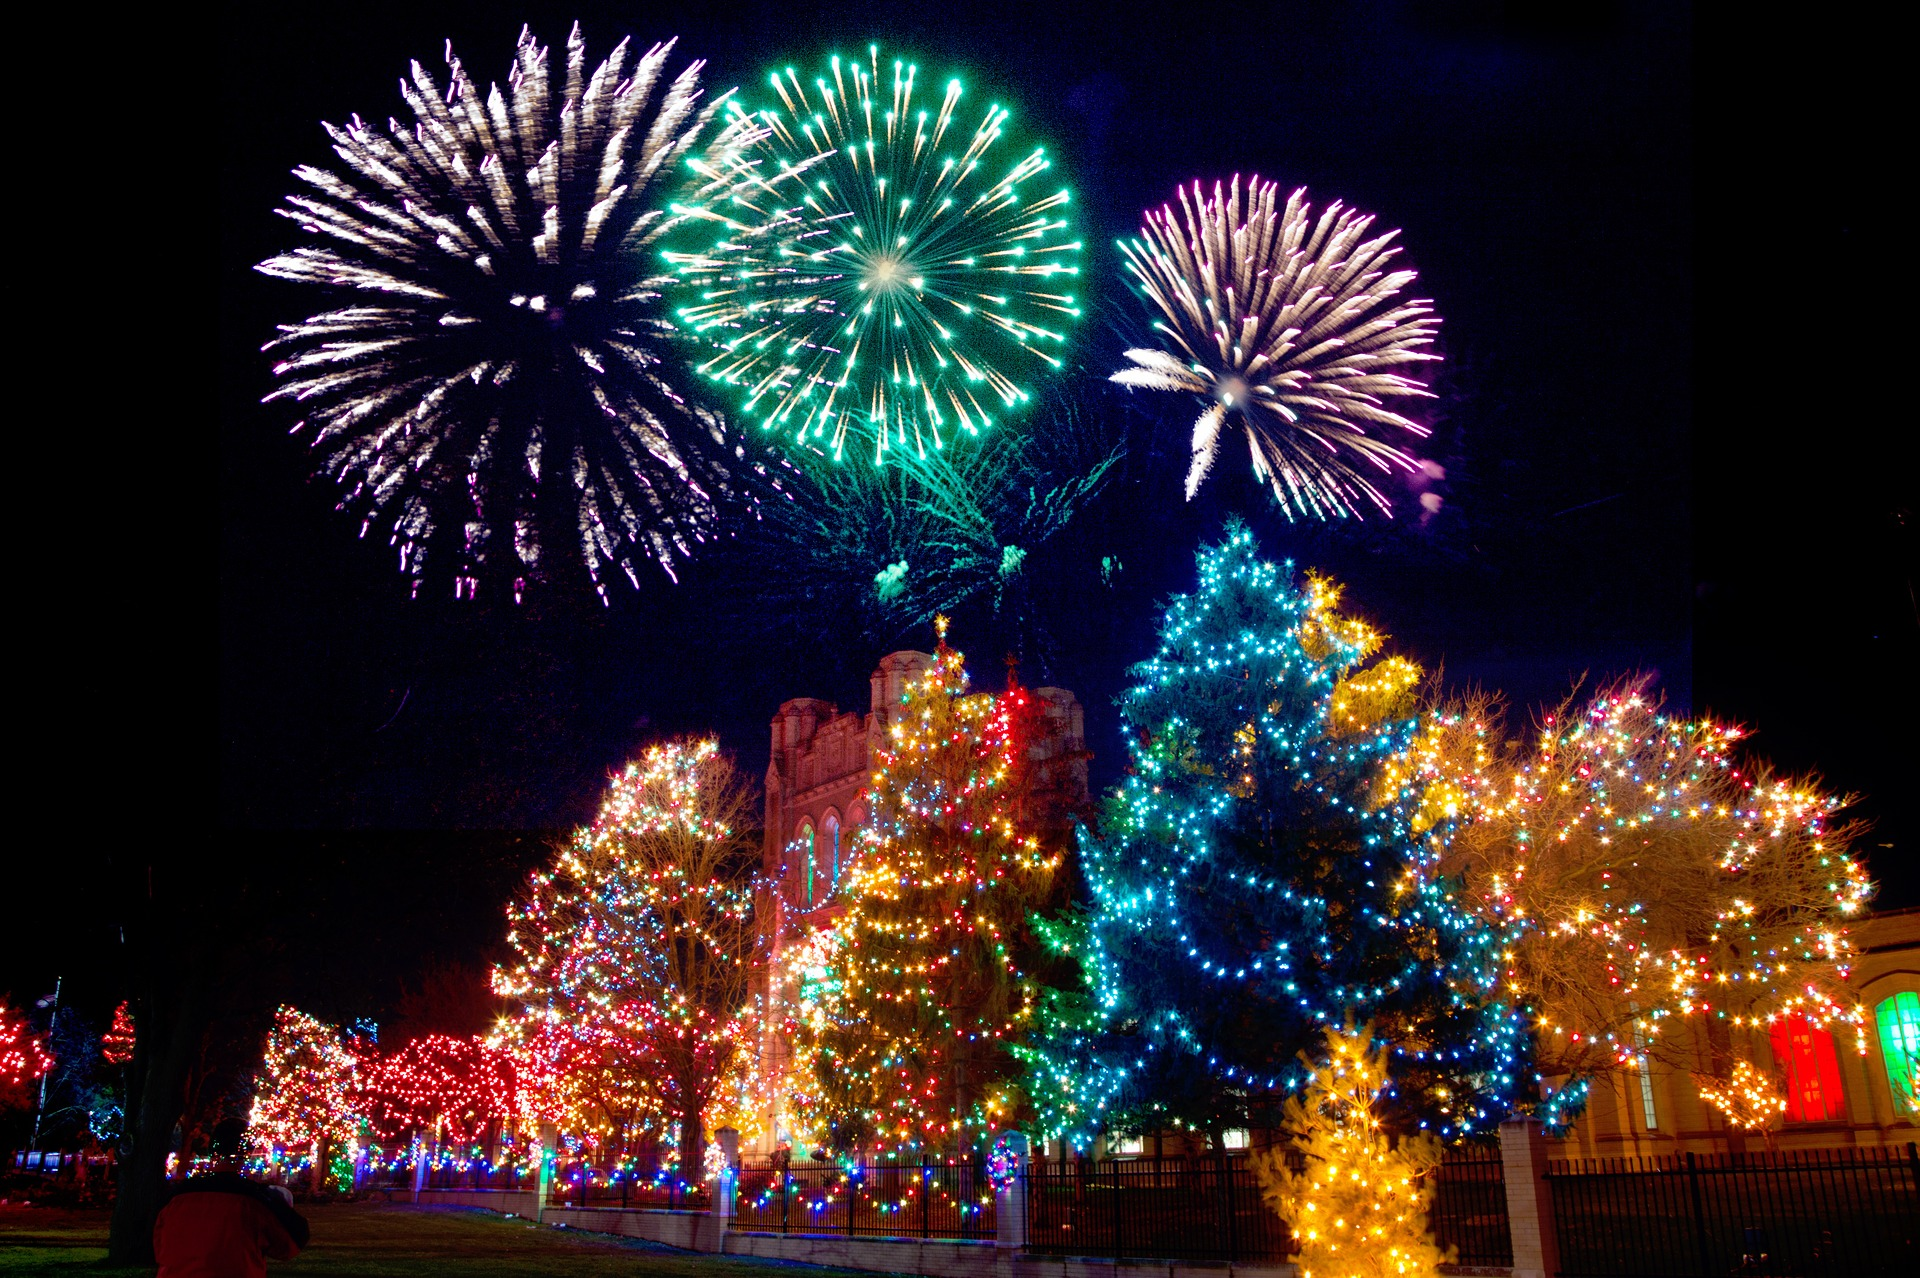 Two Terrific Ways to See the Holiday Lights